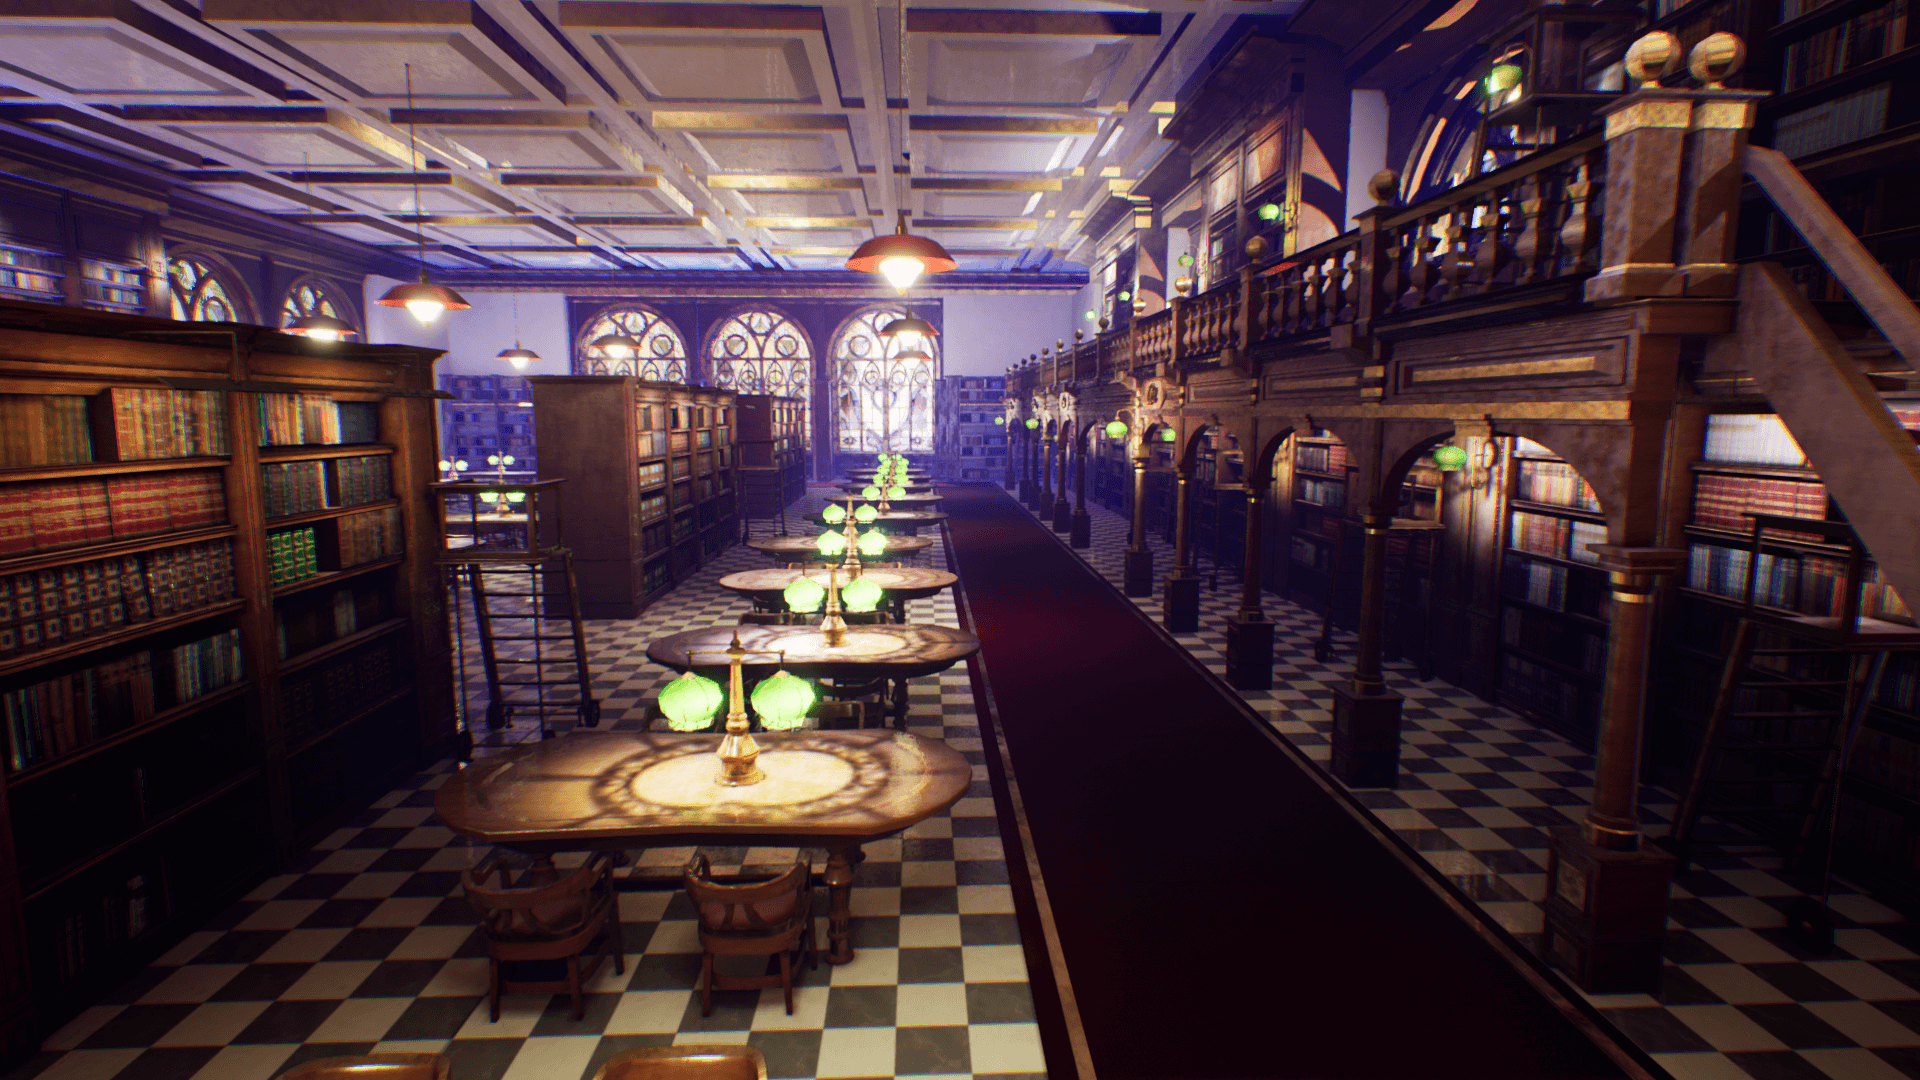 An image showing National Library asset pack, created with Unreal Engine.